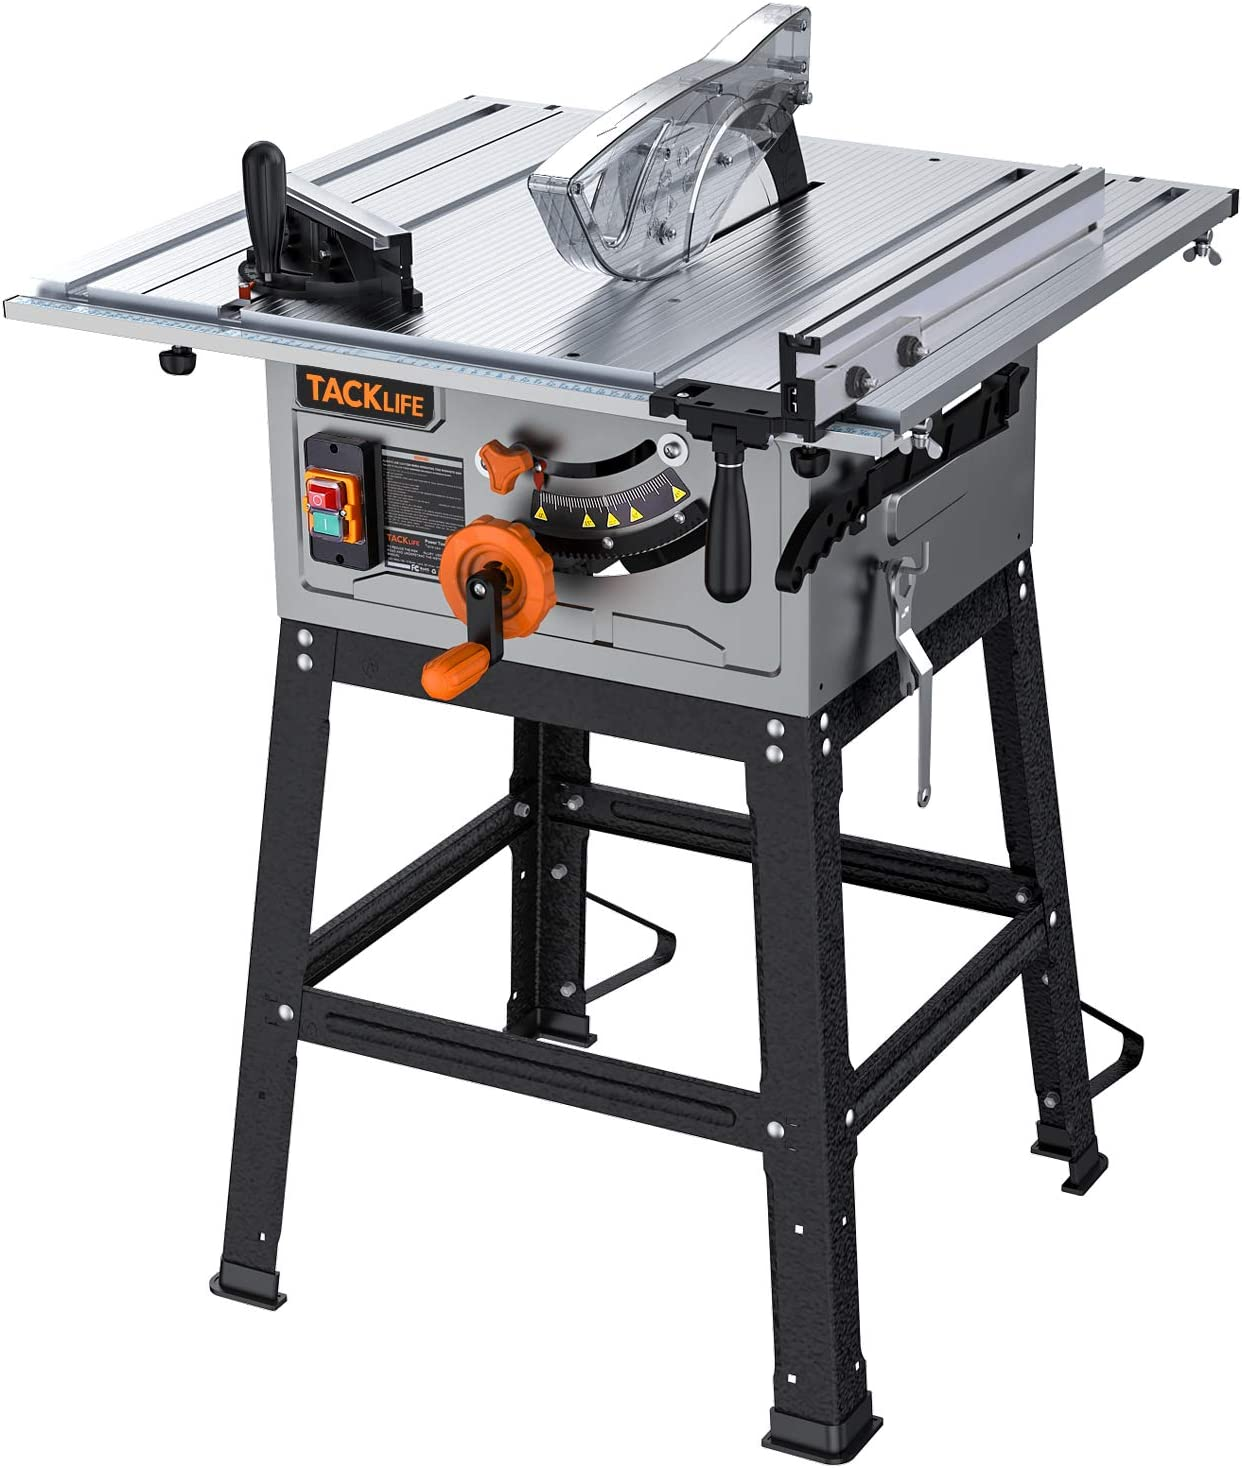 3. Tacklife MTS01A 10-Inch Table Saw